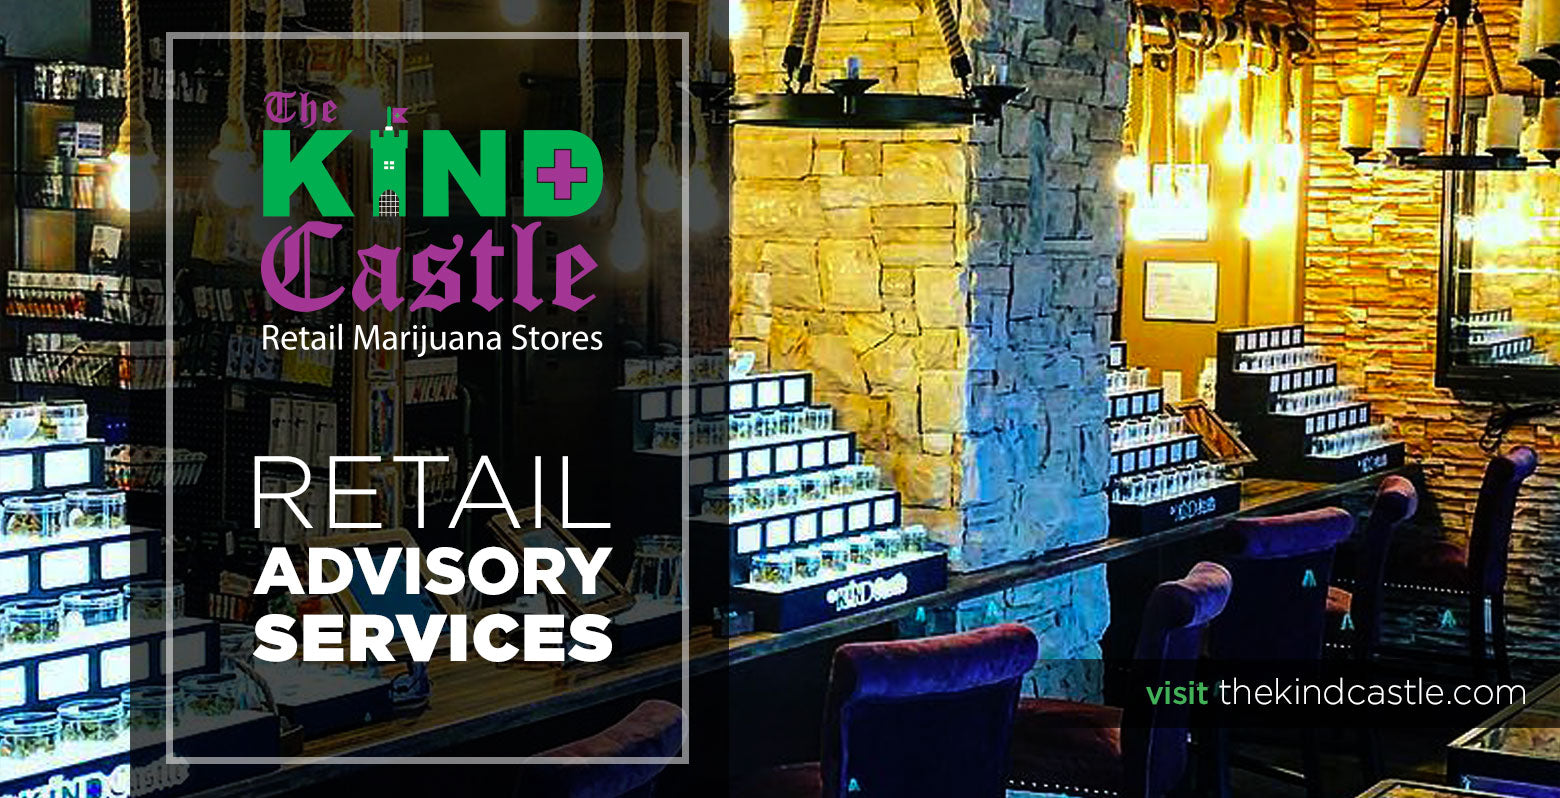 The Kind Castle Retail Advisory Services